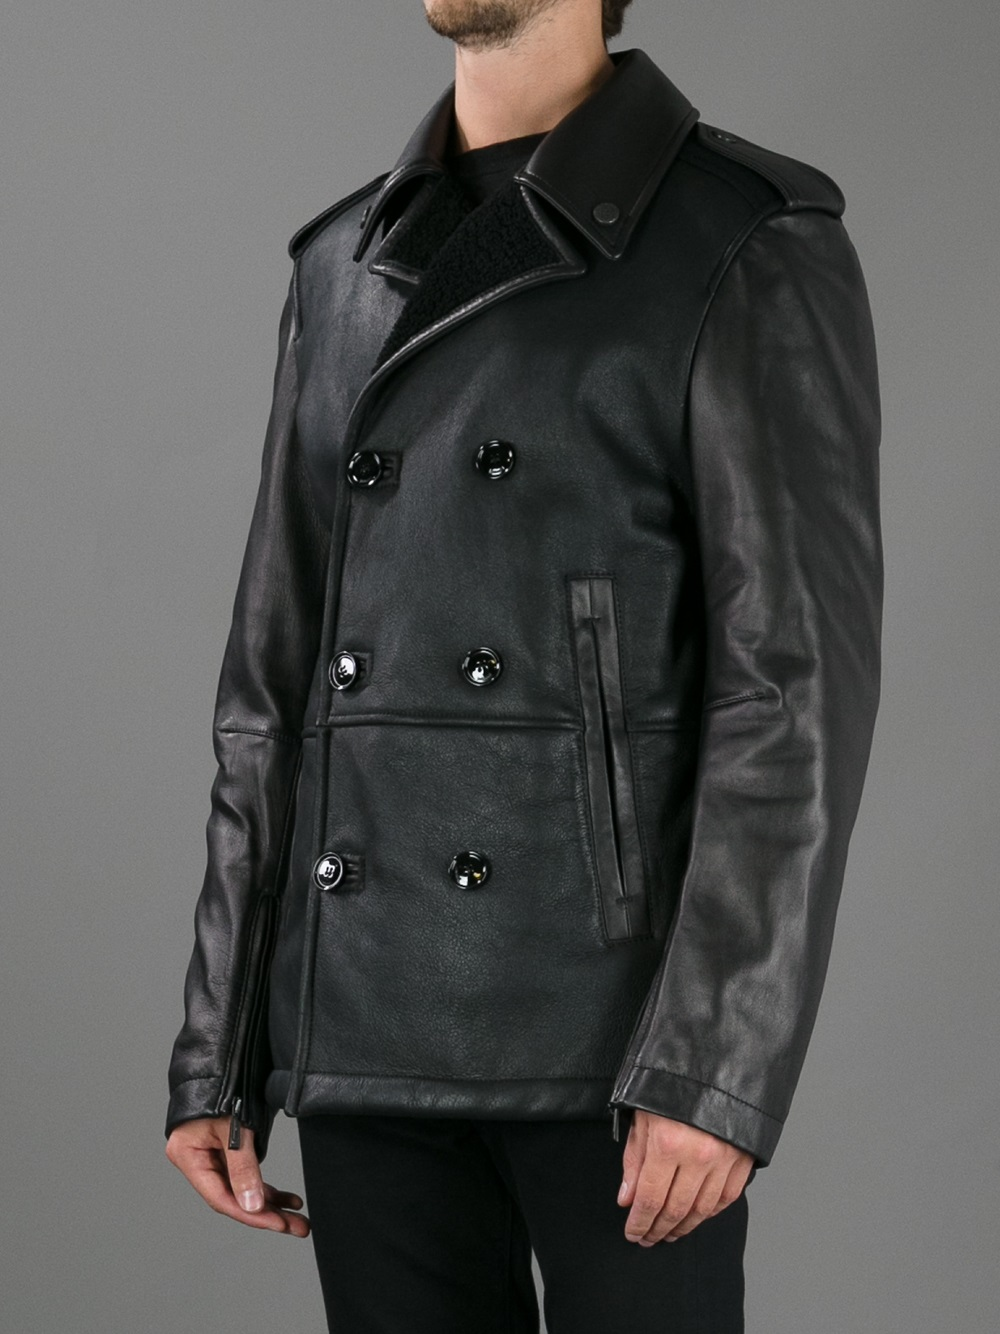 Lyst - Just Cavalli Double Breasted Leather Coat in Black for Men 508a5539d